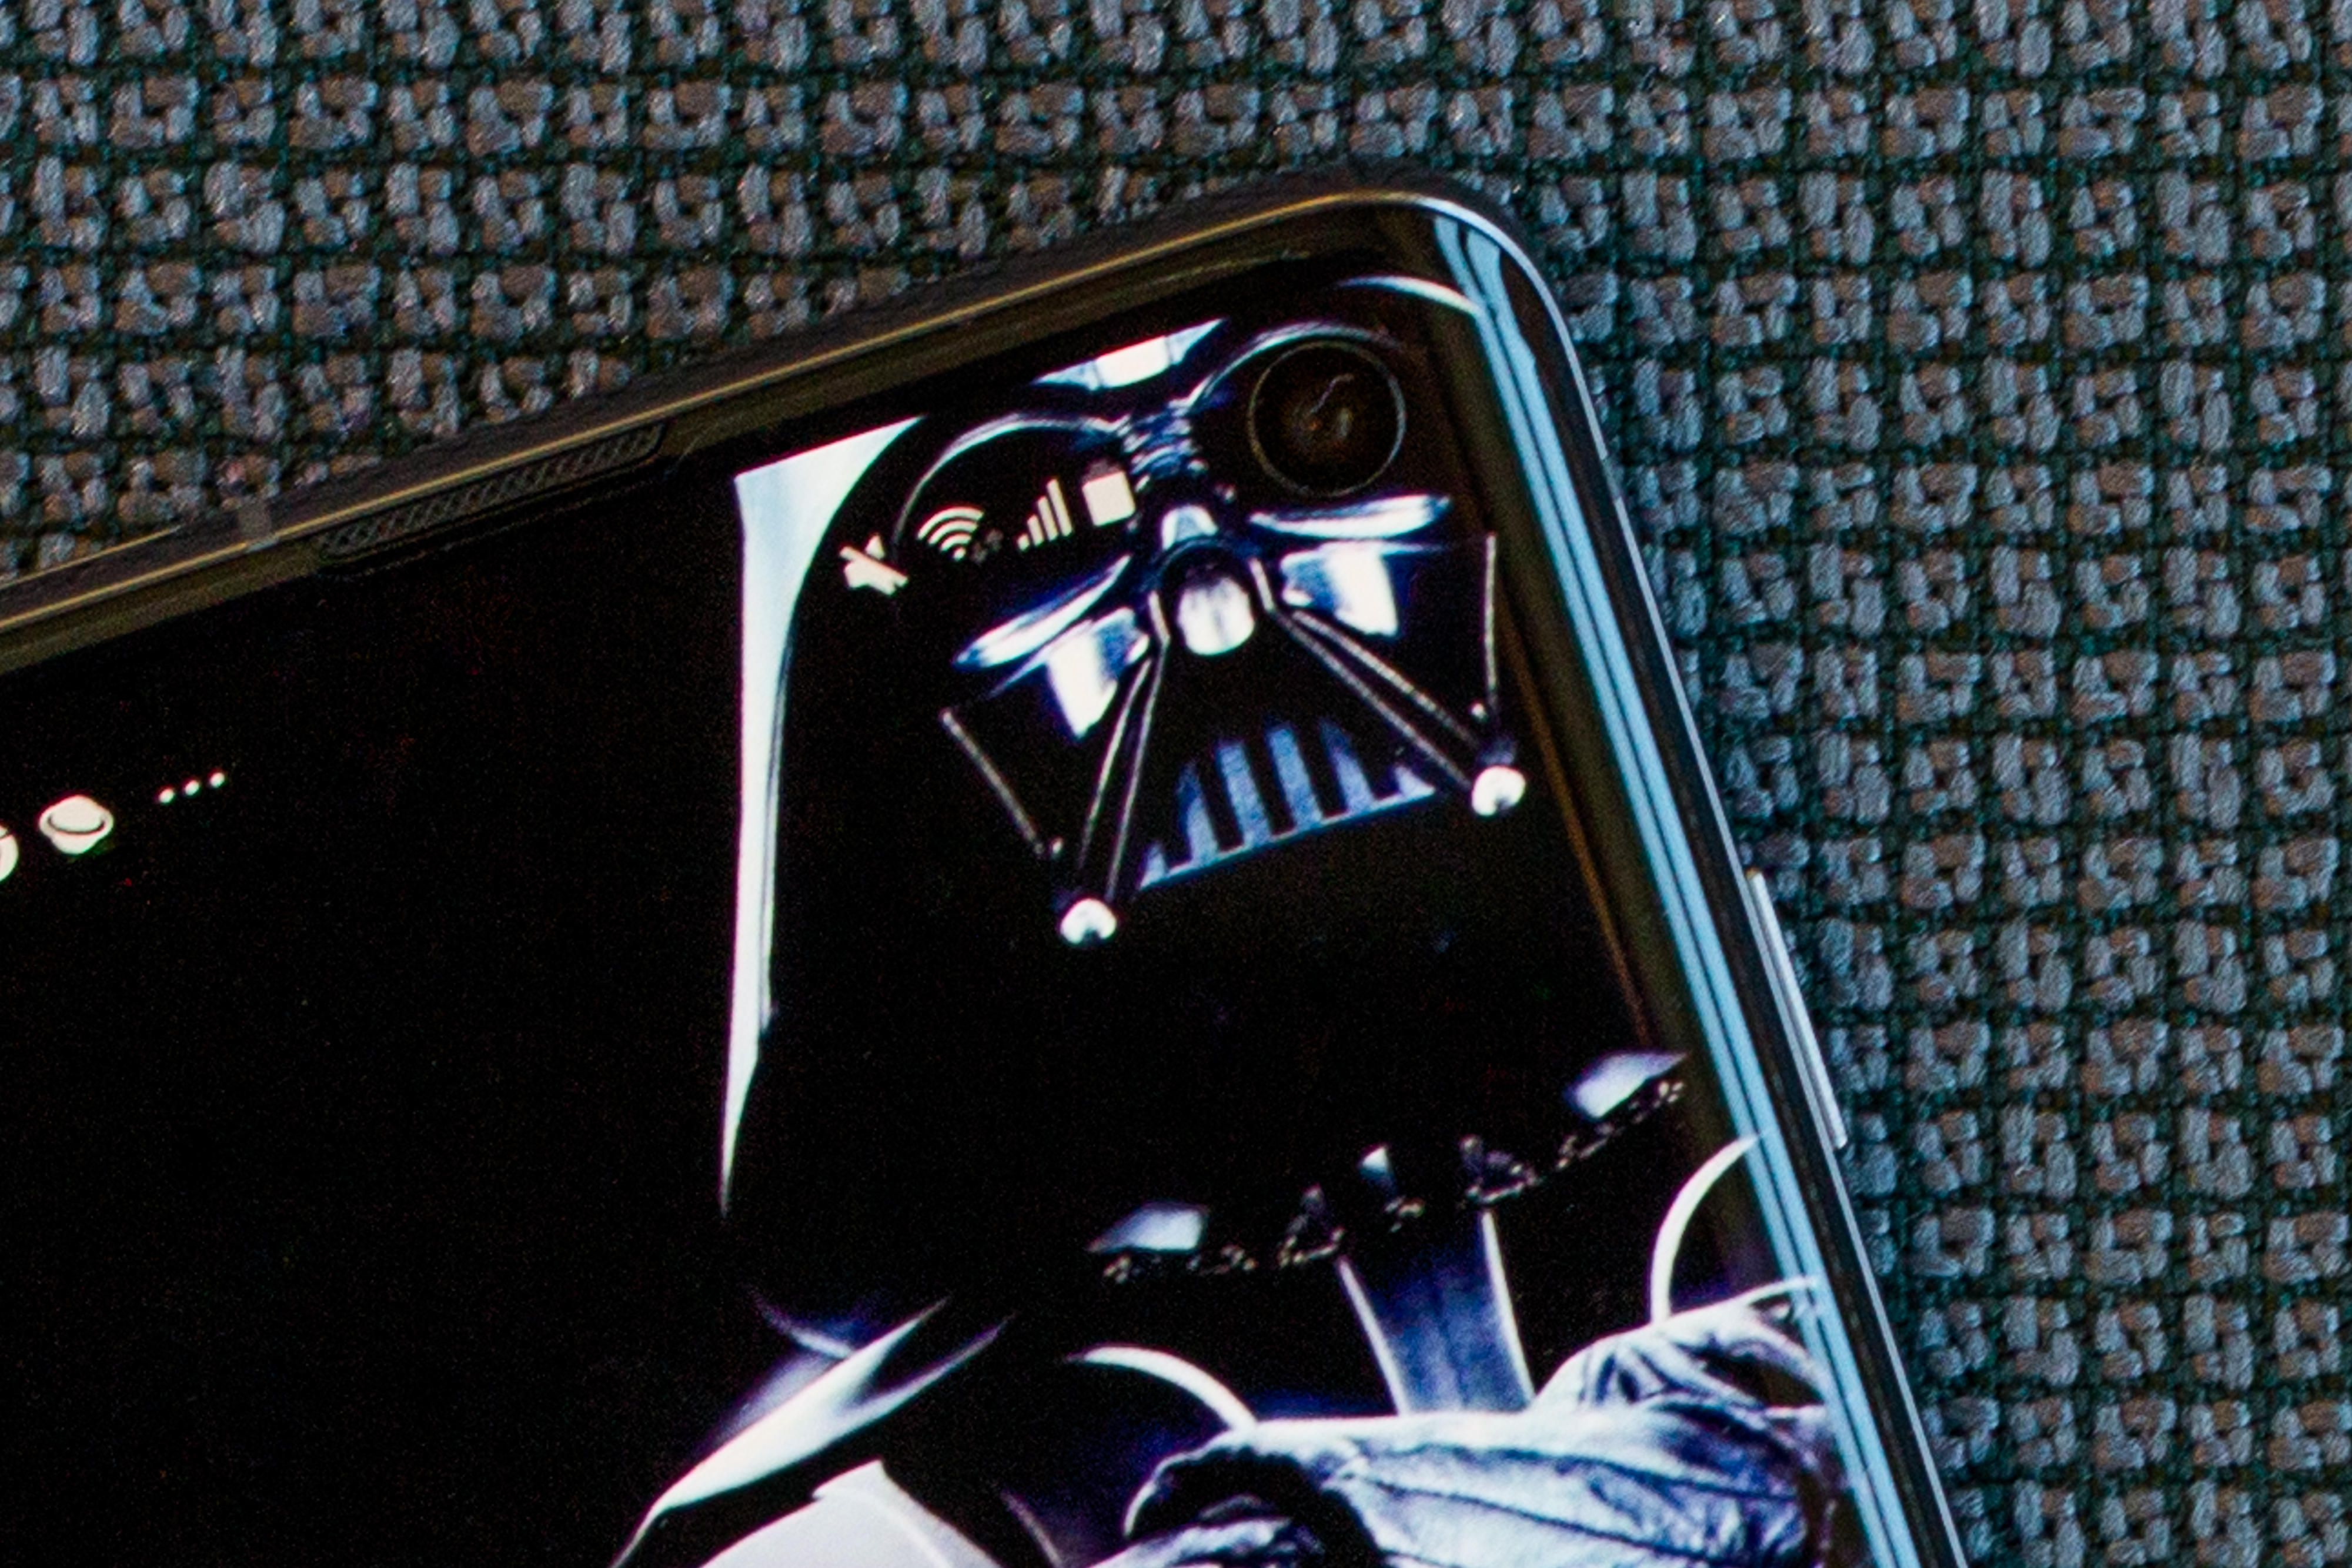 Galaxy S10 Black Hole Wallpaper How To Get The First Event Horizon Picture On Your Phone Breaking Tech News